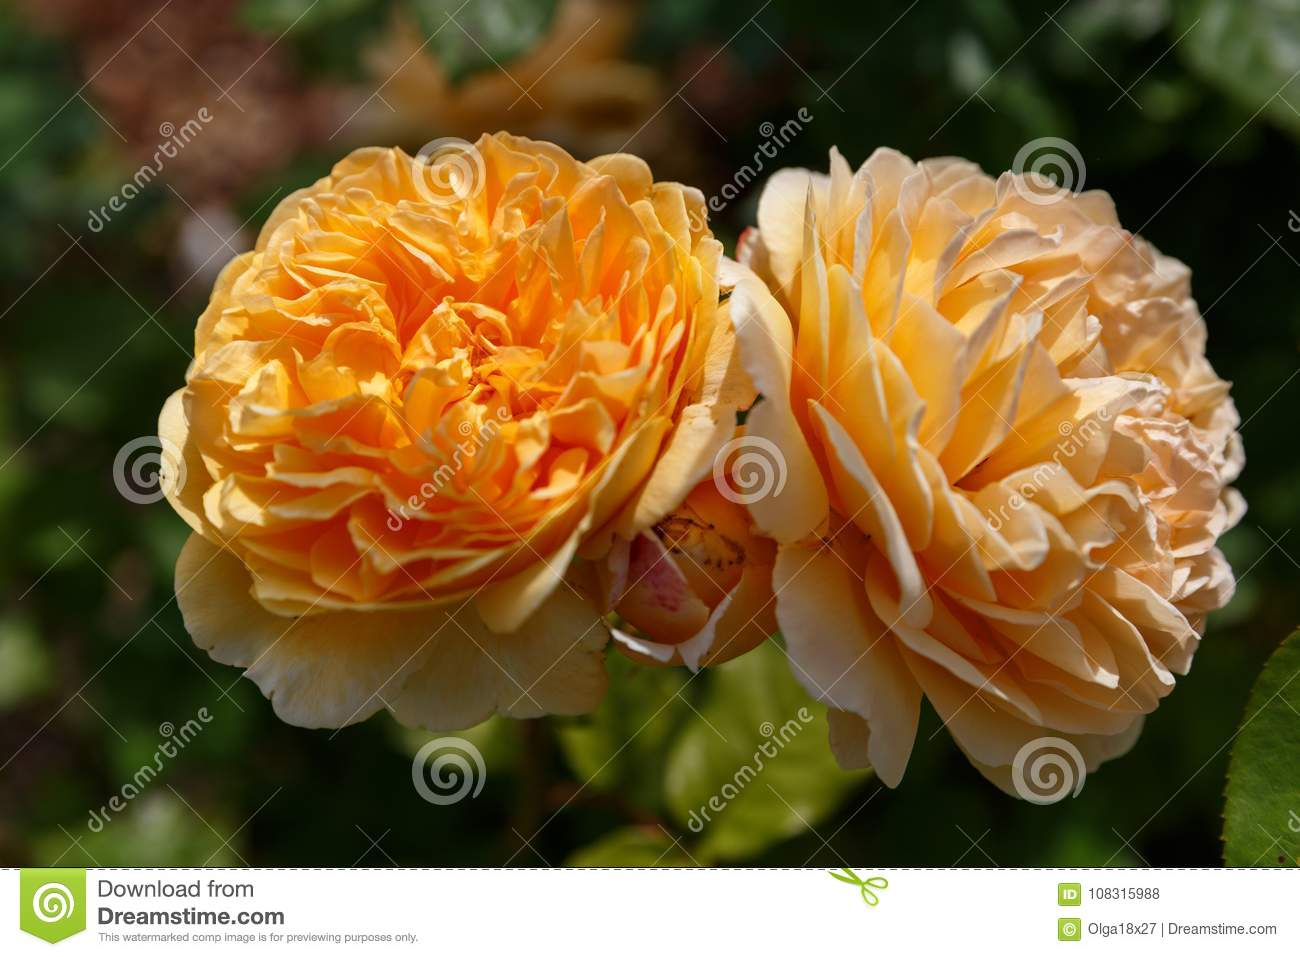 Blooming yellow orange english roses in the garden on a sunny day download blooming yellow orange english roses in the garden on a sunny day rose graham altavistaventures Images